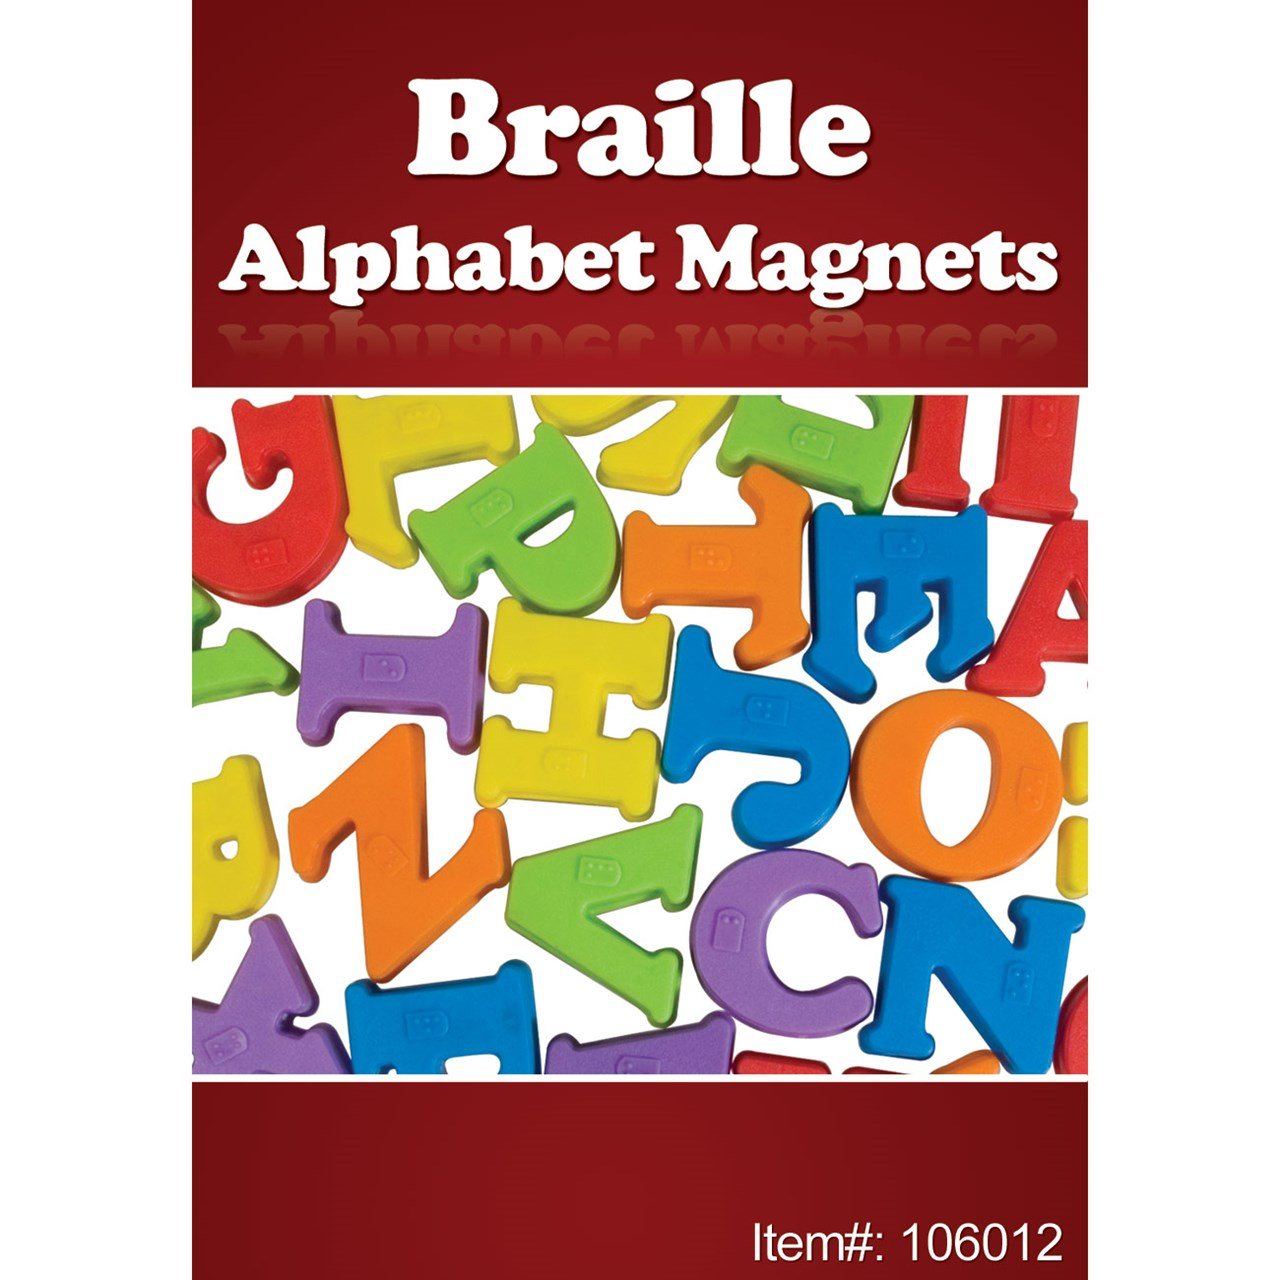 braille alphabet magnets 26 upper case letters